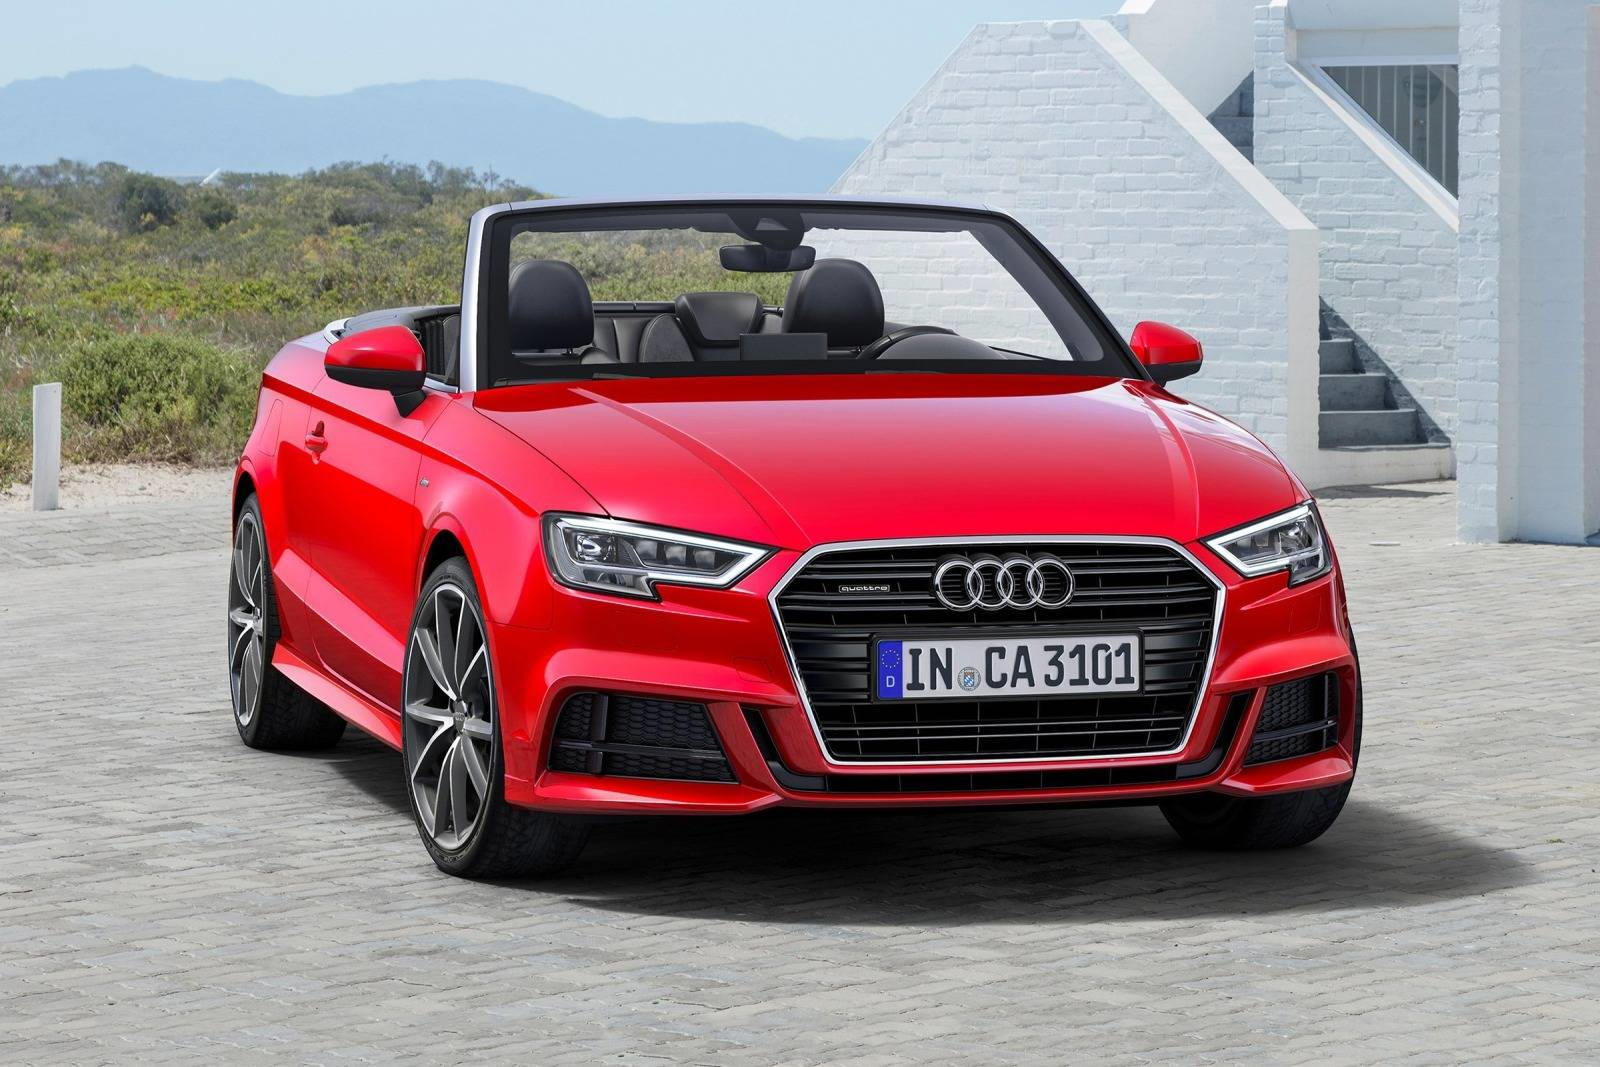 Audi A Convertible Review Trims Specs And Price CarBuzz - Audi a3 convertible